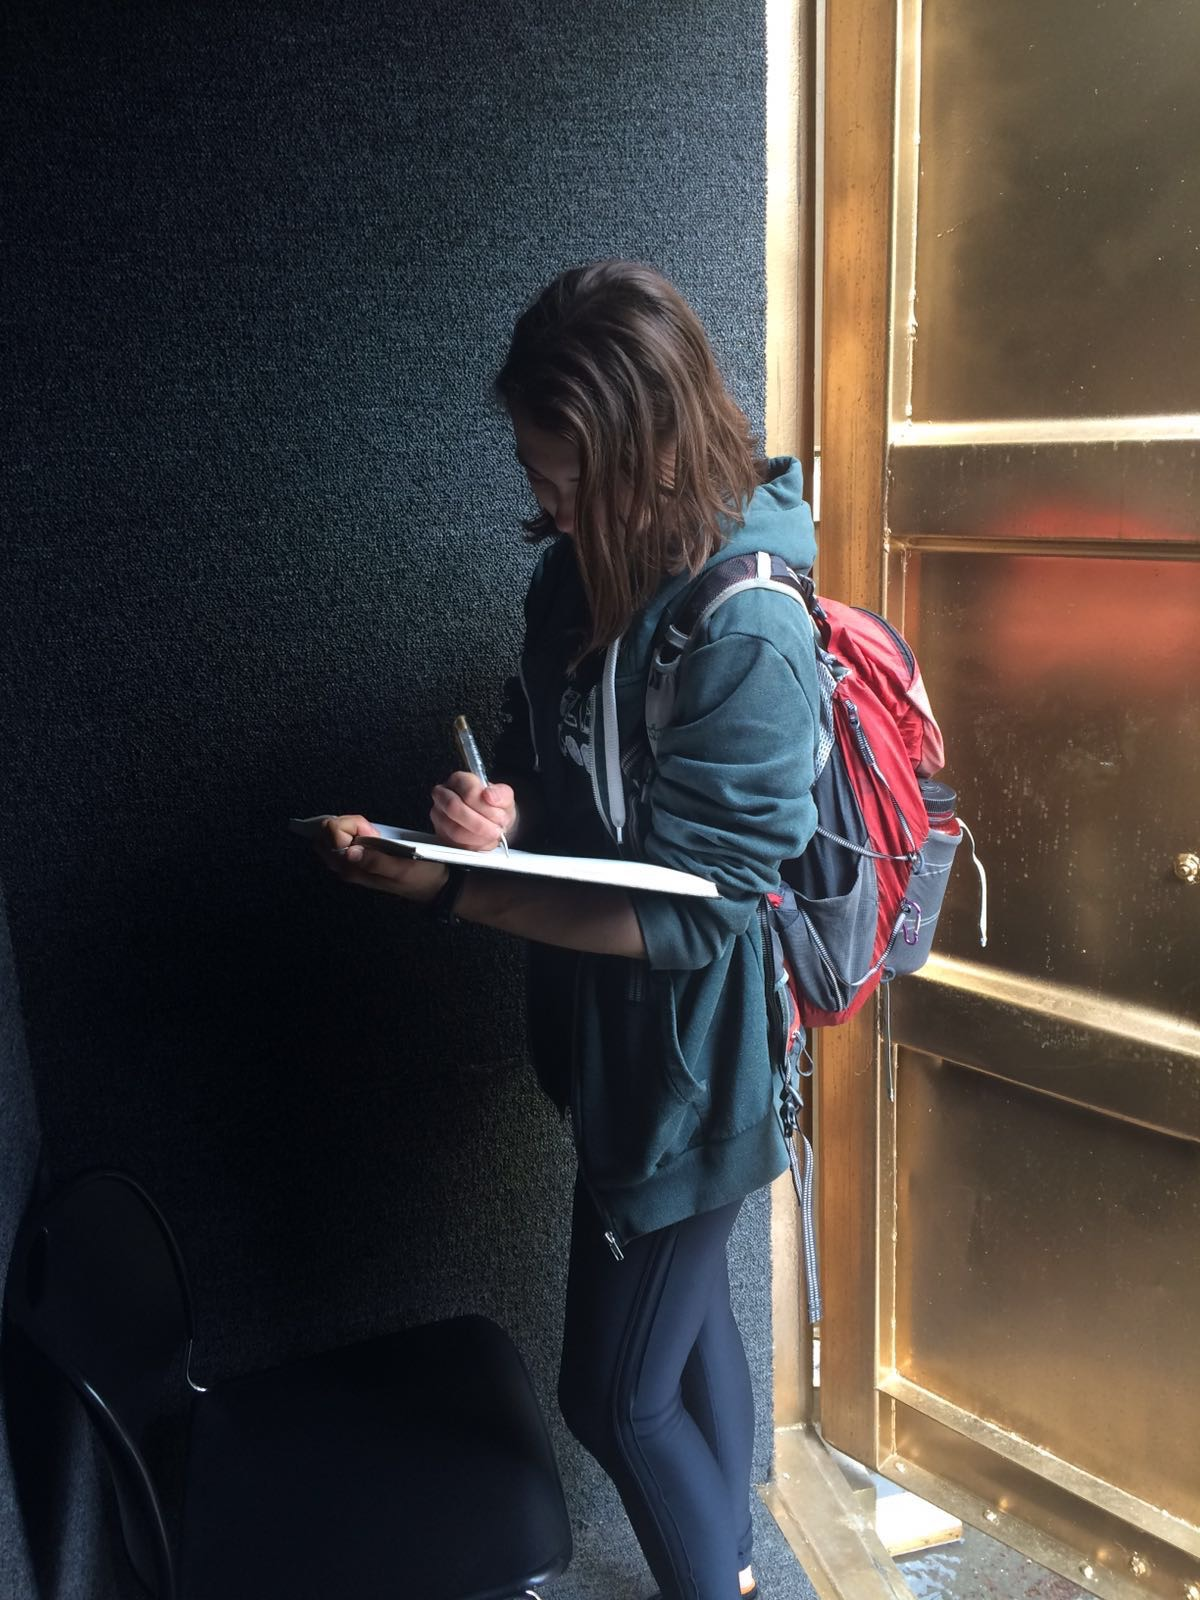 Student writes in our gold book after her Portal conversation